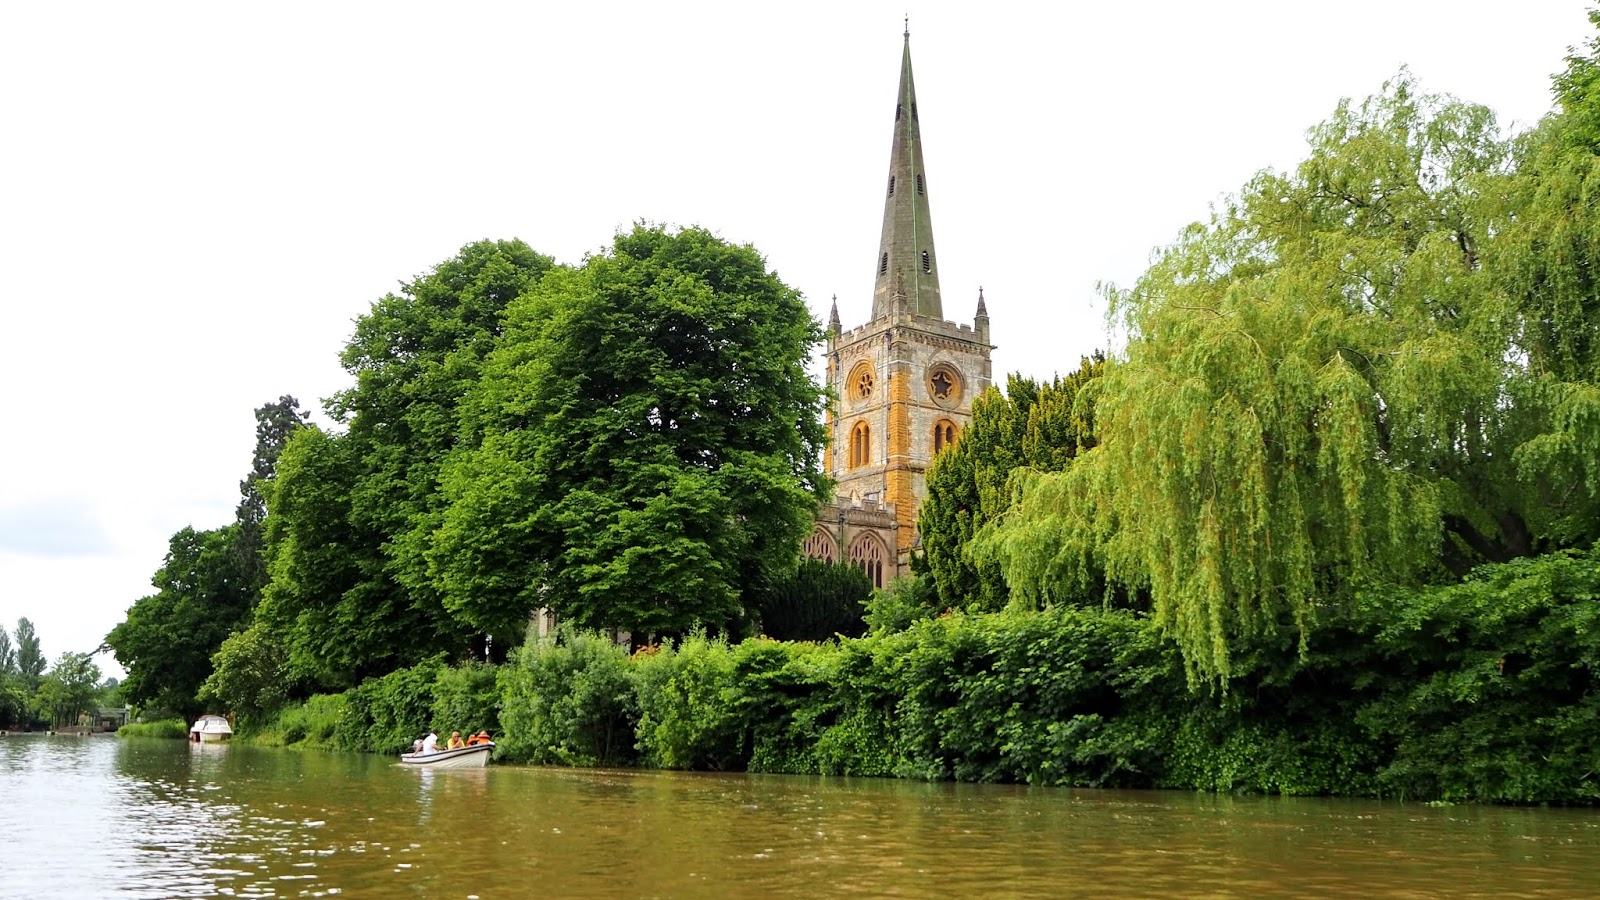 Trinity Church Stratford-Upon-Avon from the river